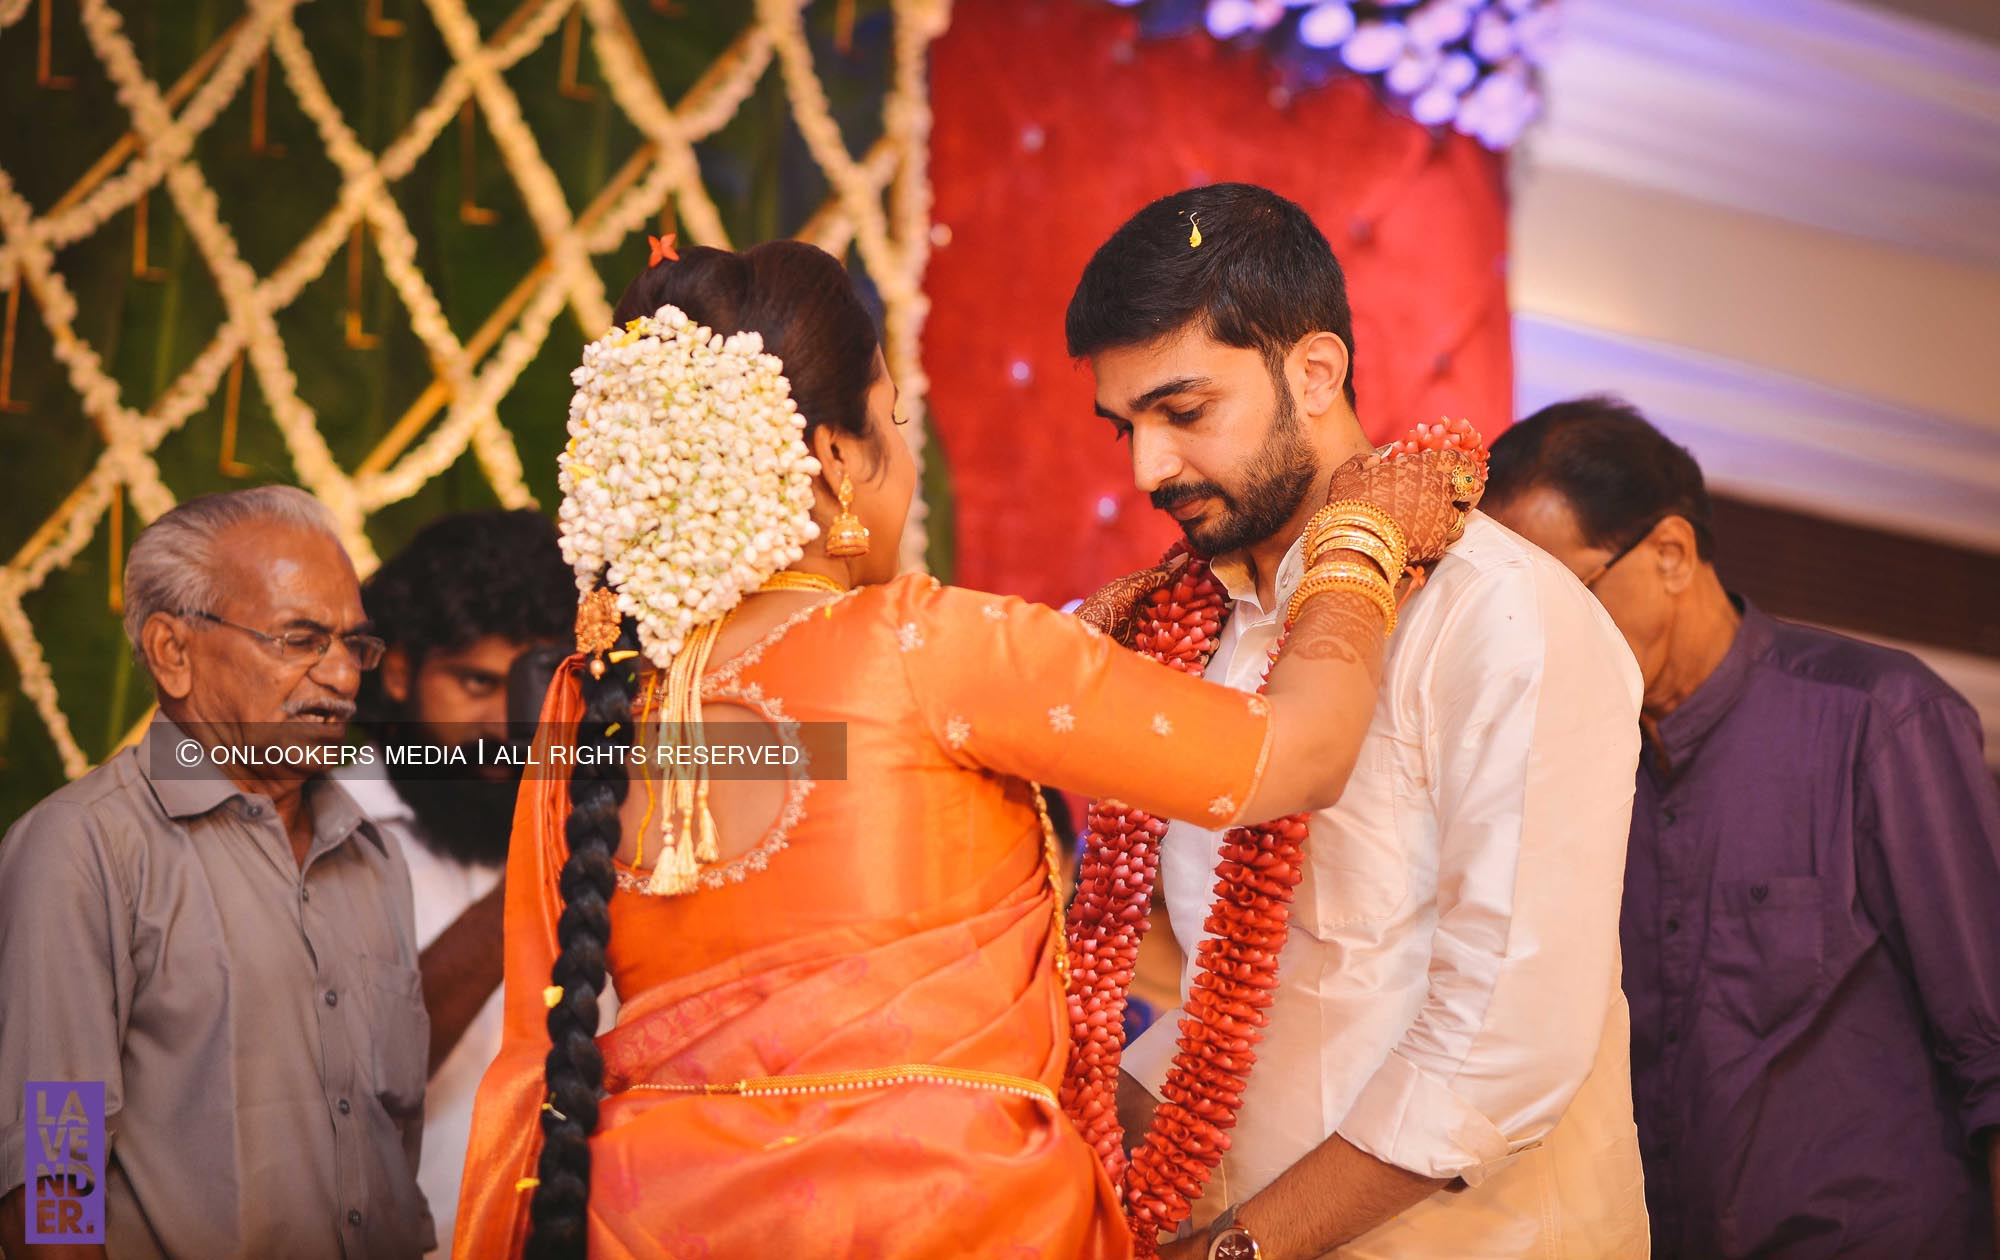 http://onlookersmedia.in/wp-content/uploads/2018/05/sreejith-vijay-wedding-stills-images-53.jpg